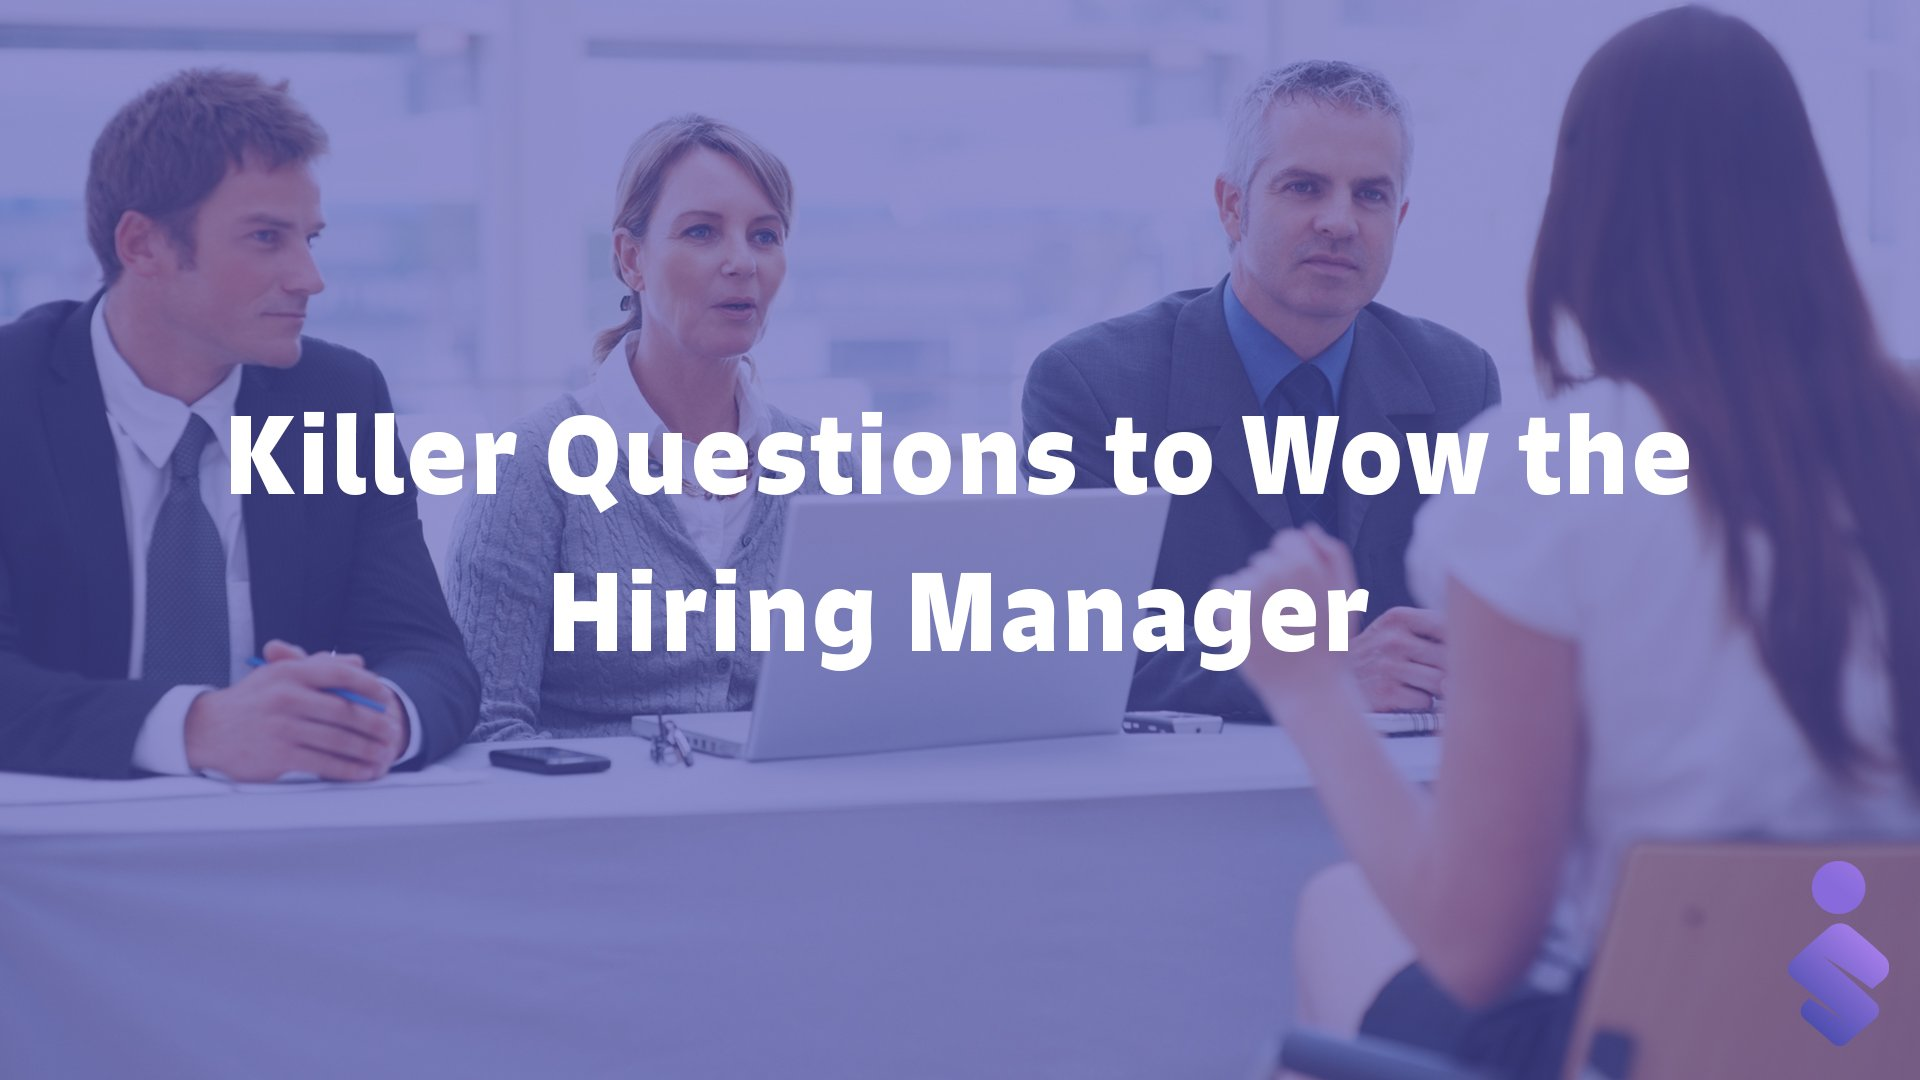 Killer Questions to Wow the Hiring Manager - Blogs & Articles